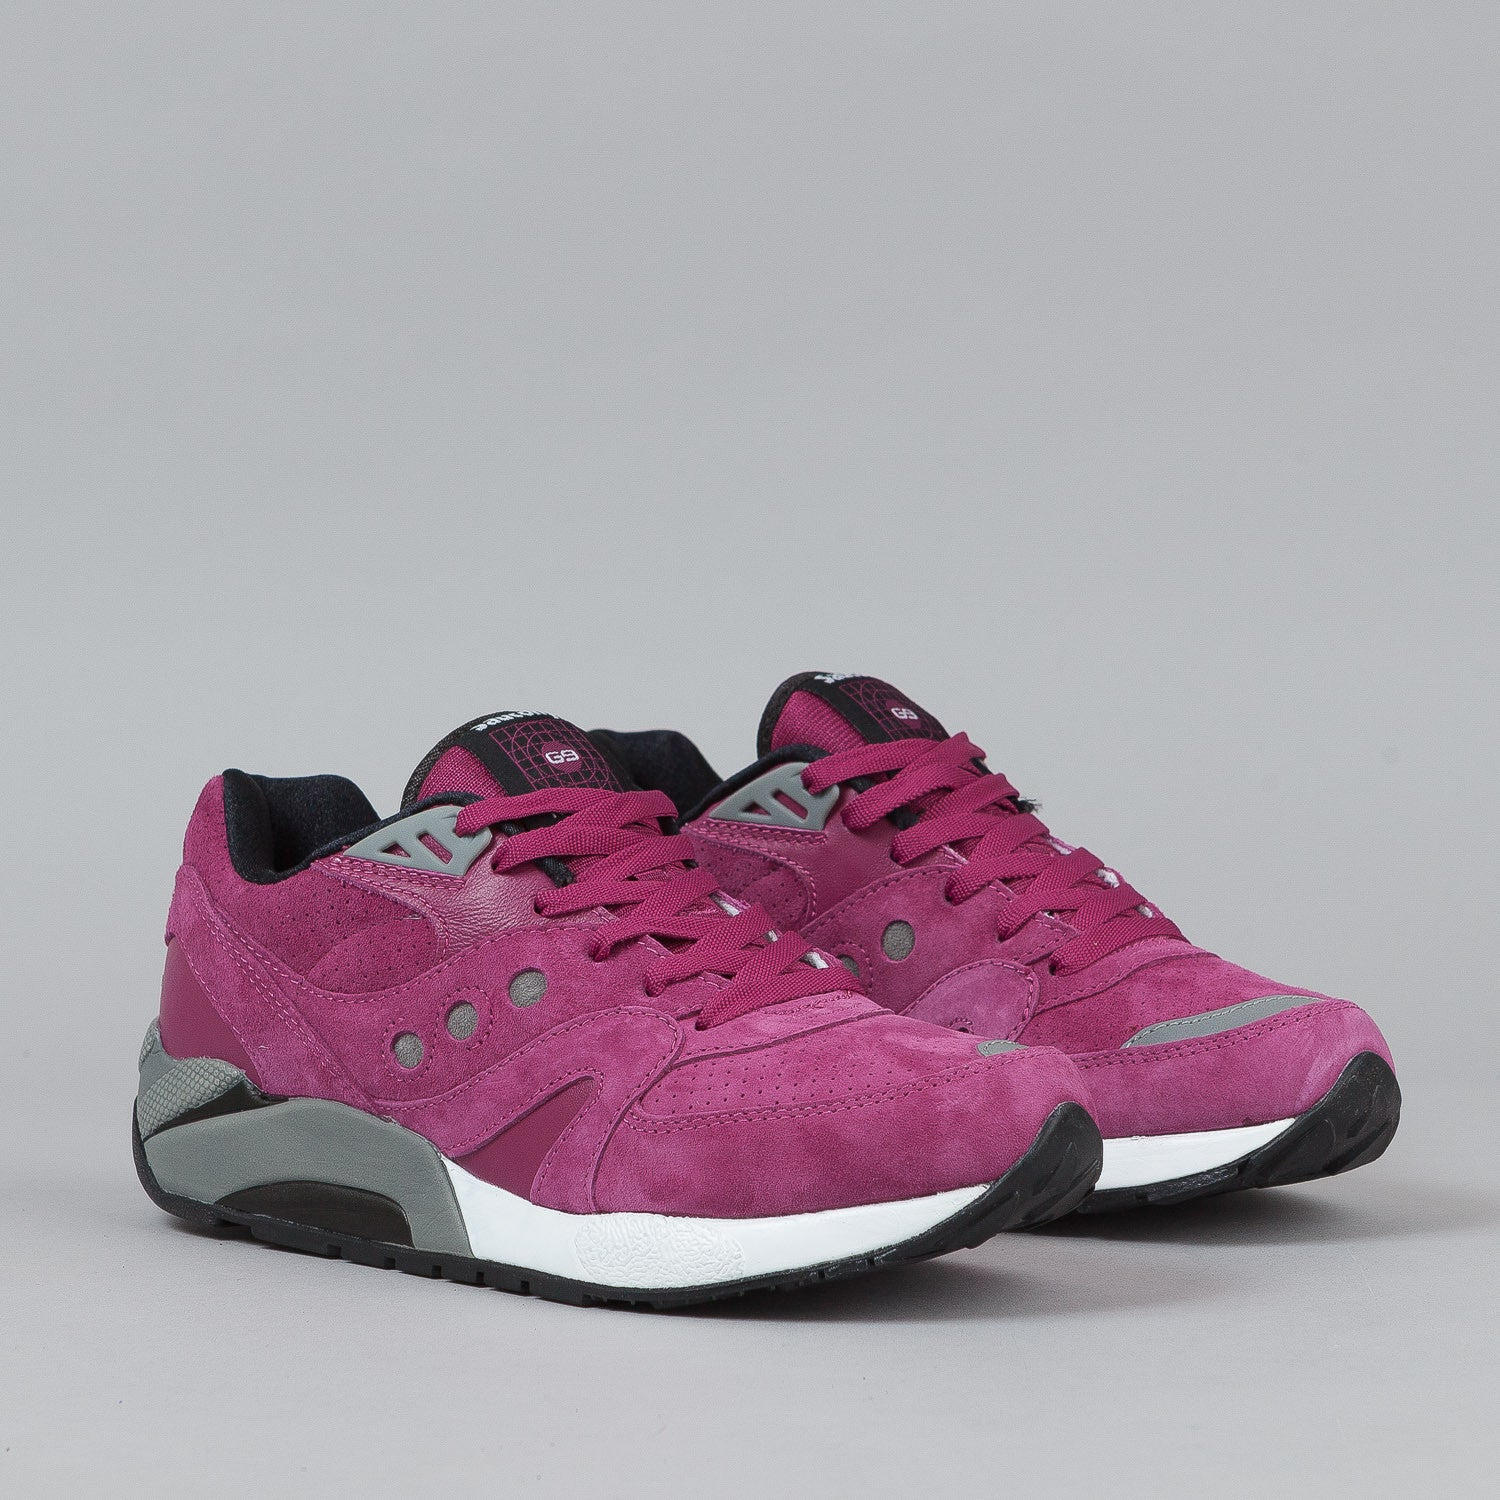 Saucony G9 Control Shoes - Wine